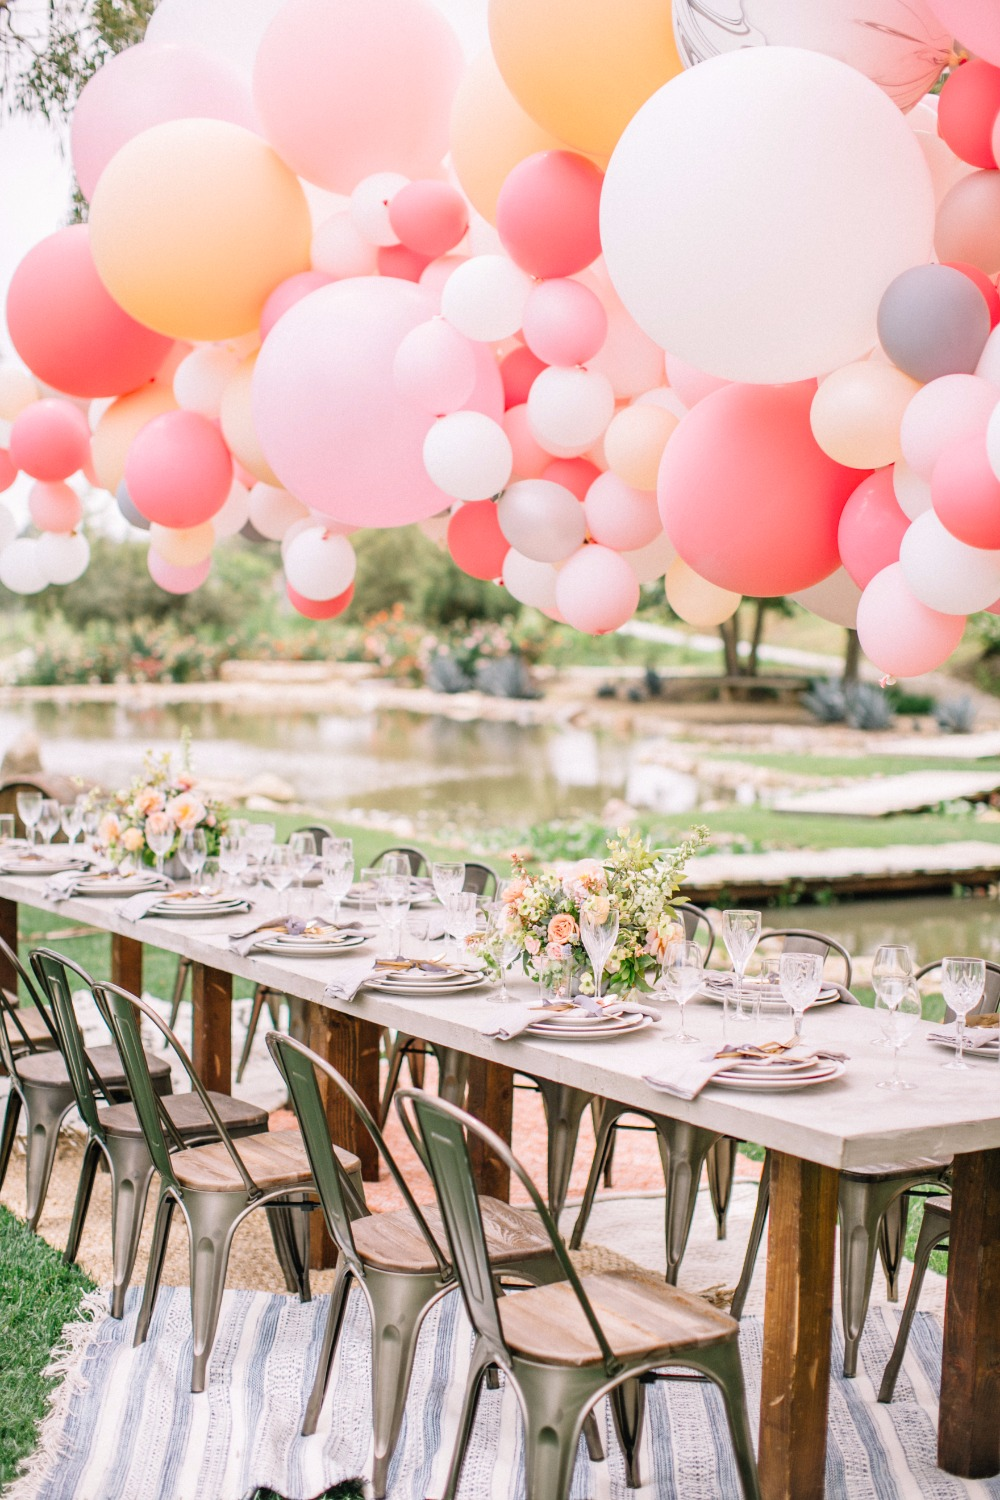 A Chic Garden Wedding Filled with Balloons!